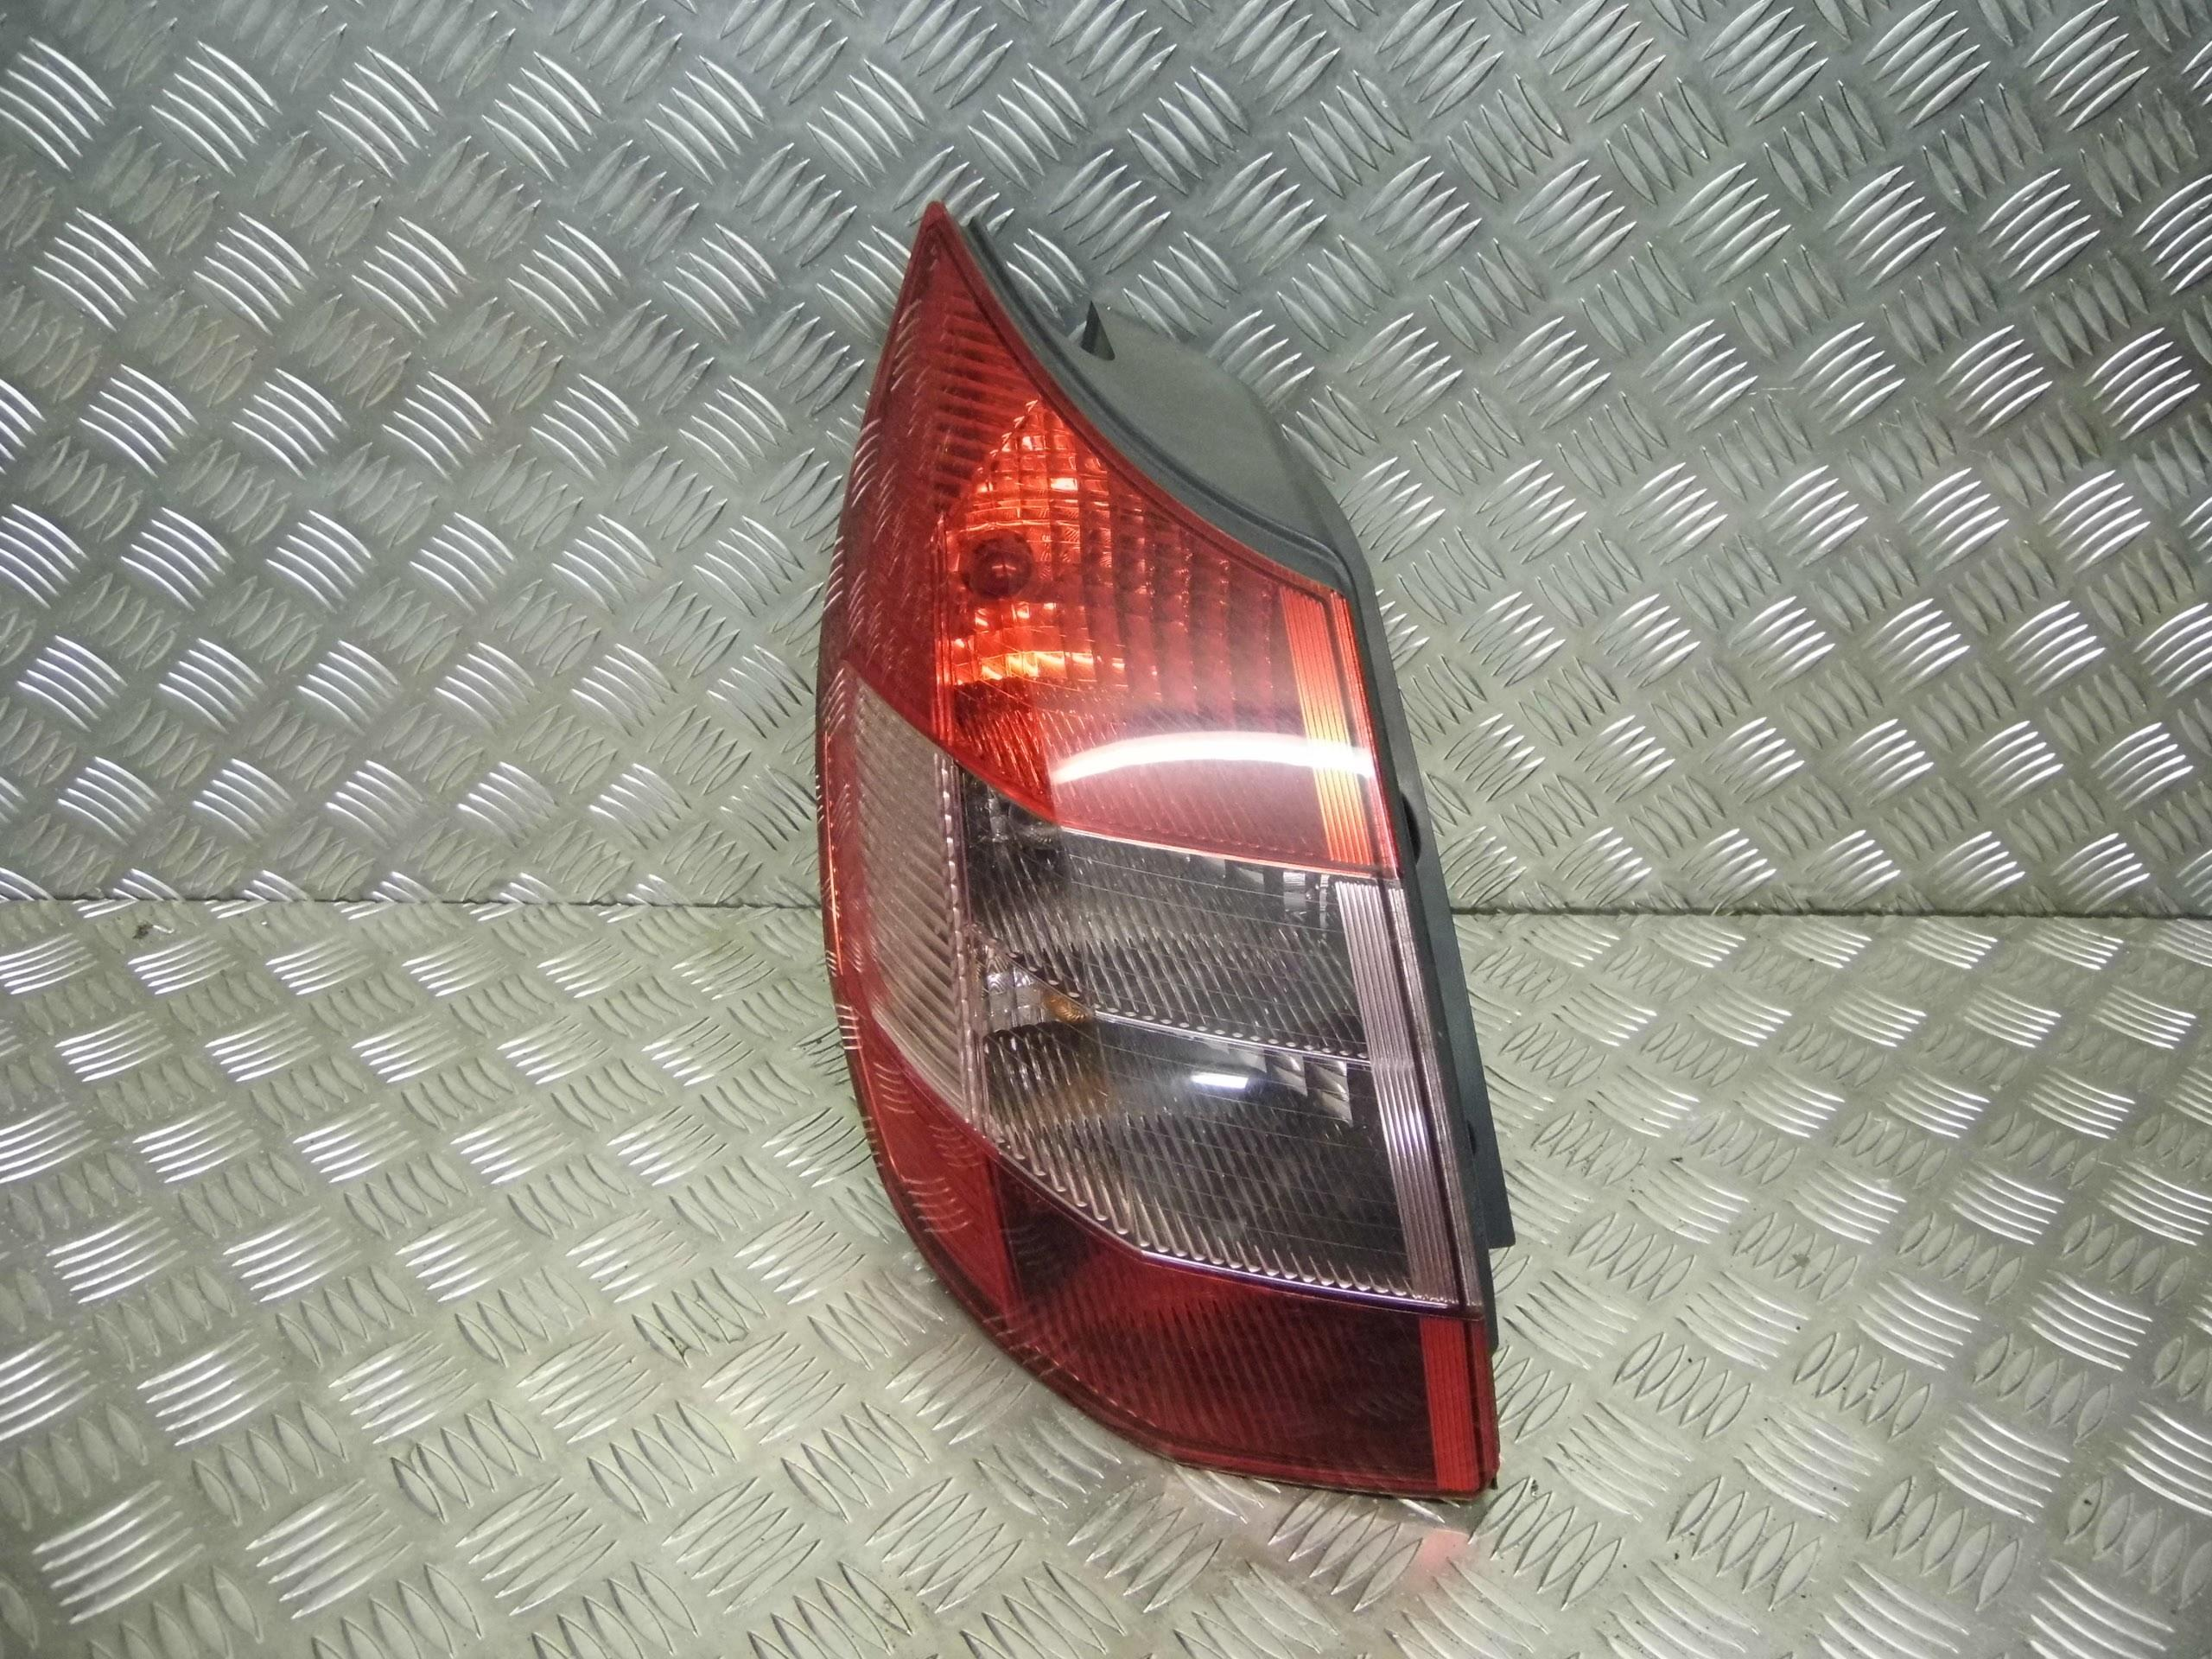 Used 2004 Renault Scenic Mpv Passengers Side Rear Light